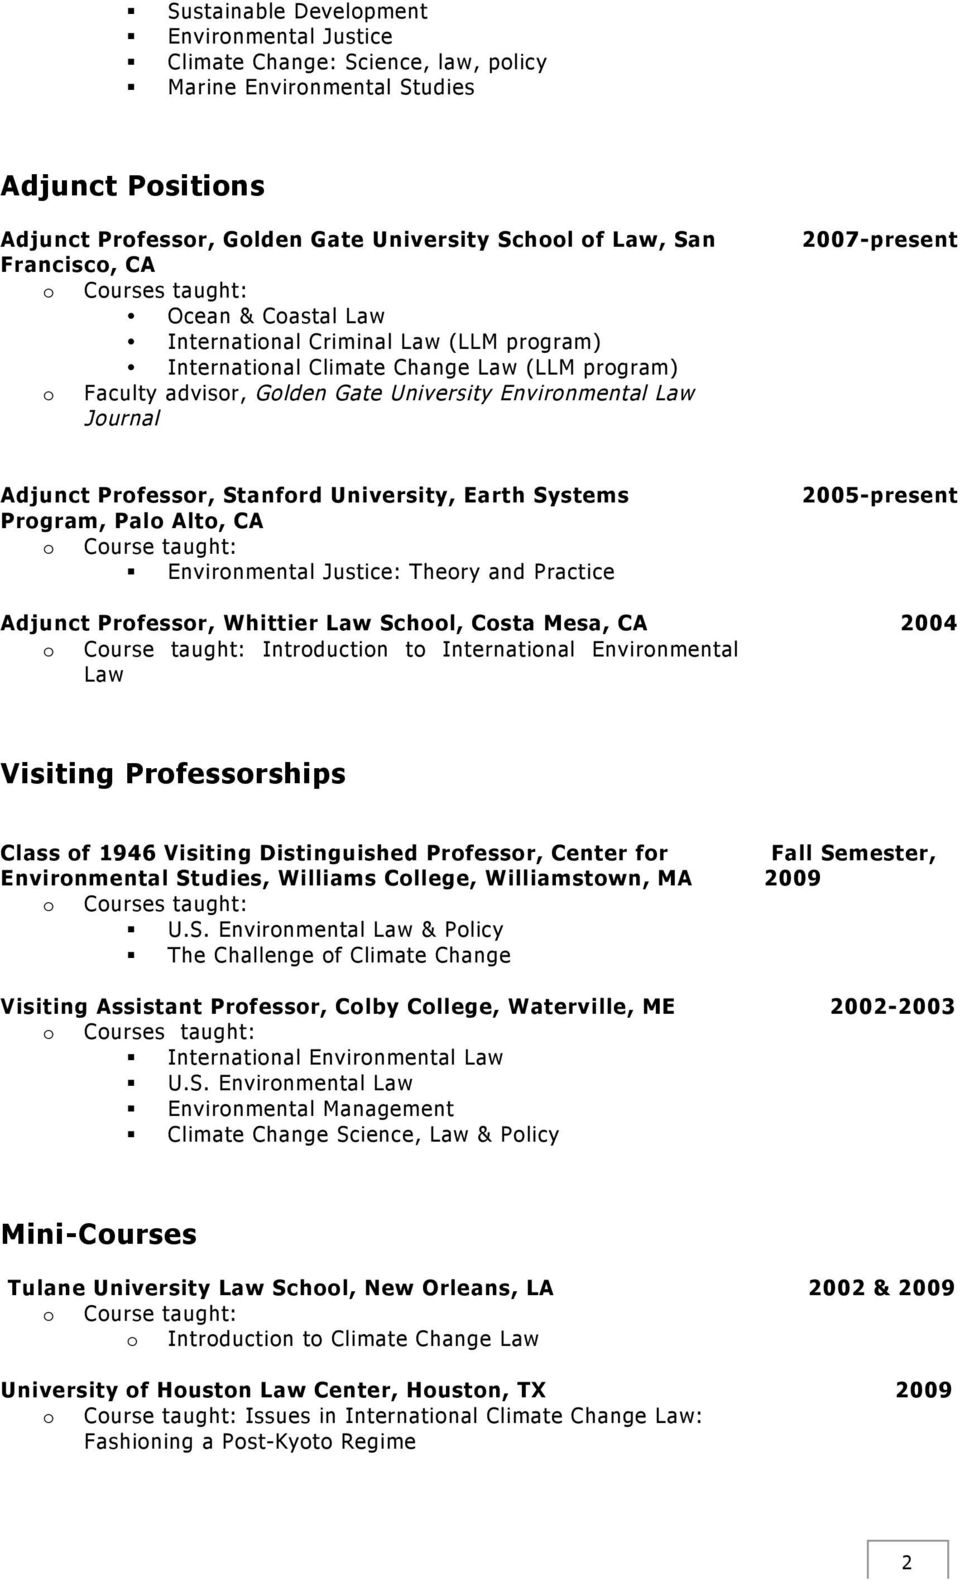 Prfessr, Stanfrd University, Earth Systems Prgram, Pal Alt, CA Curse taught: Envirnmental Justice: Thery and Practice Adjunct Prfessr, Whittier Law Schl, Csta Mesa, CA Curse taught: Intrductin t